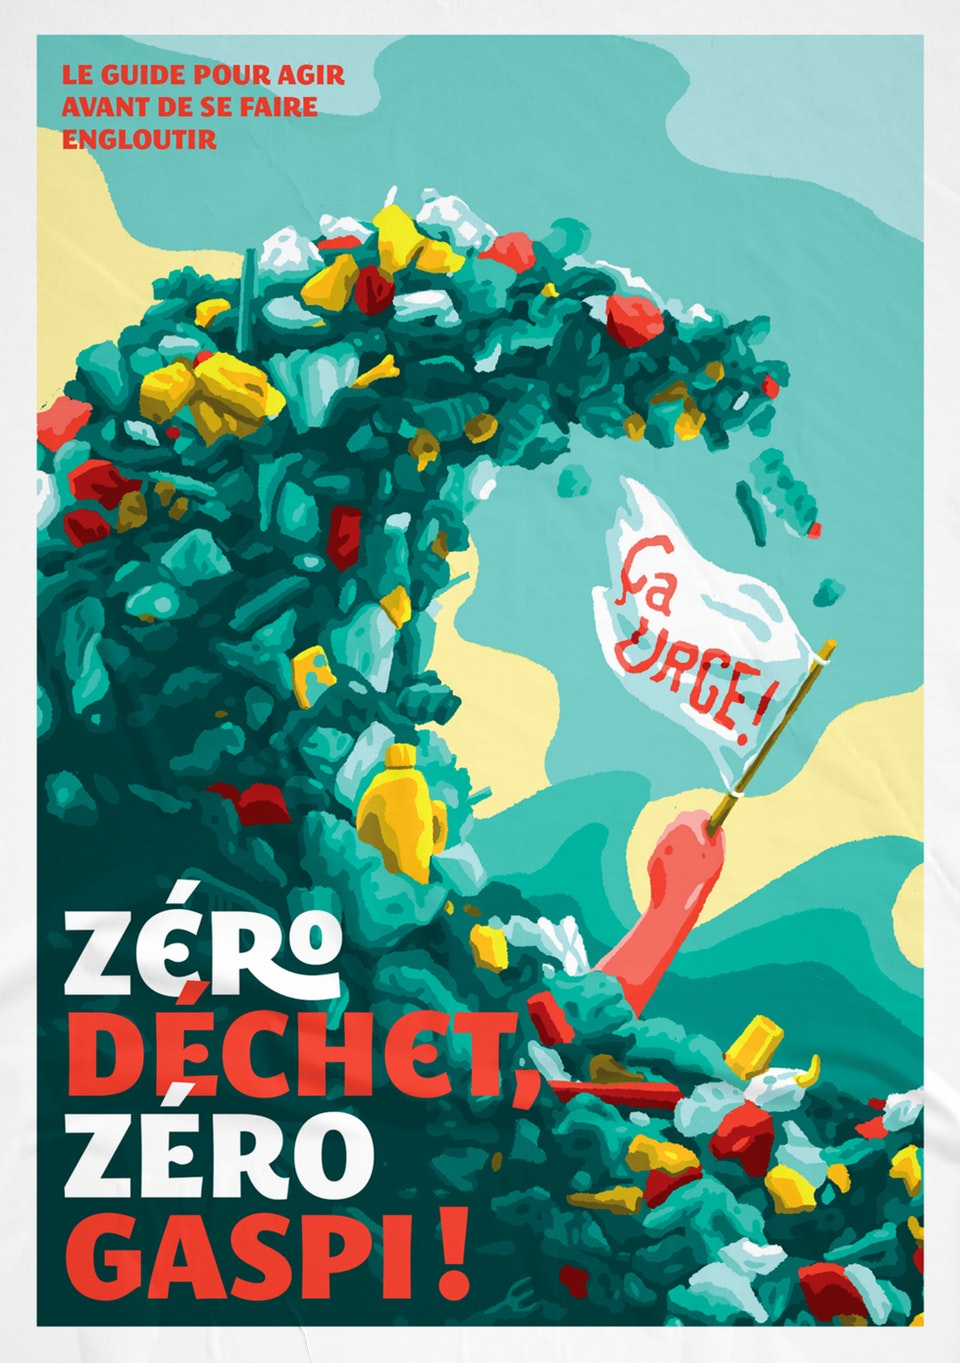 — Zero Waste Paris